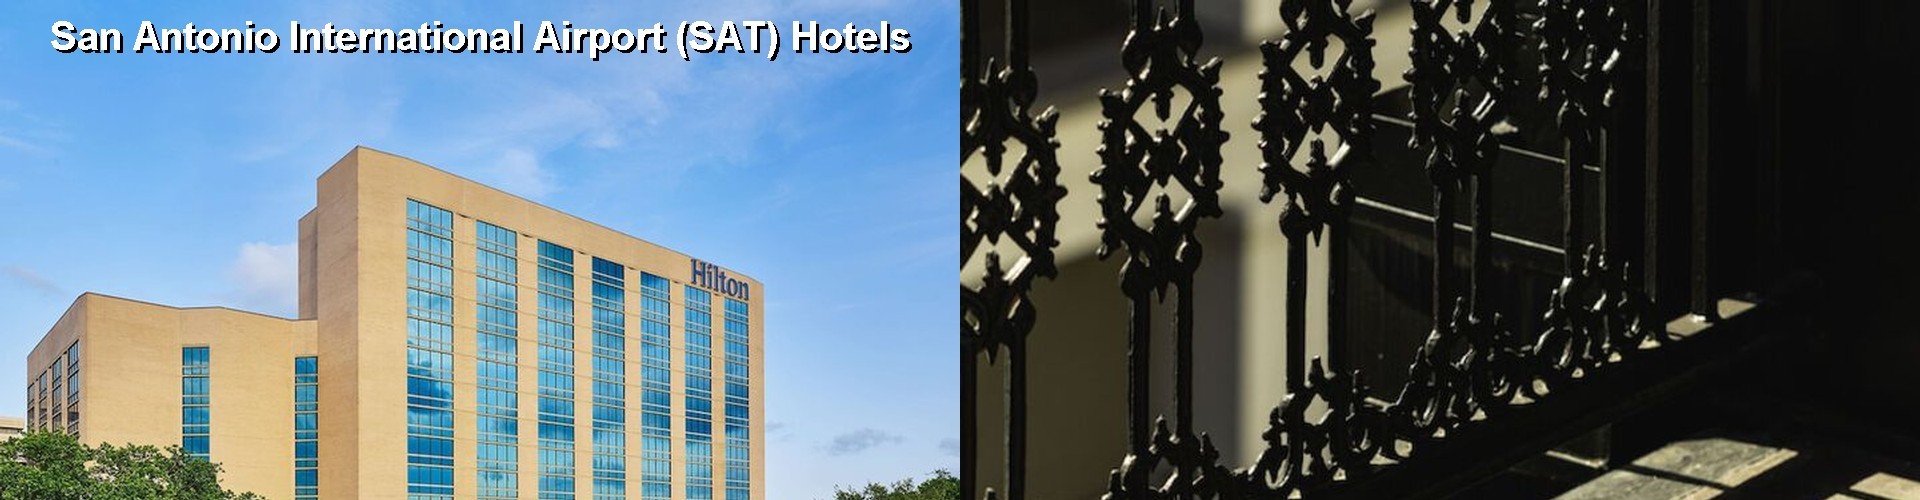 5 Best Hotels near San Antonio International Airport (SAT)